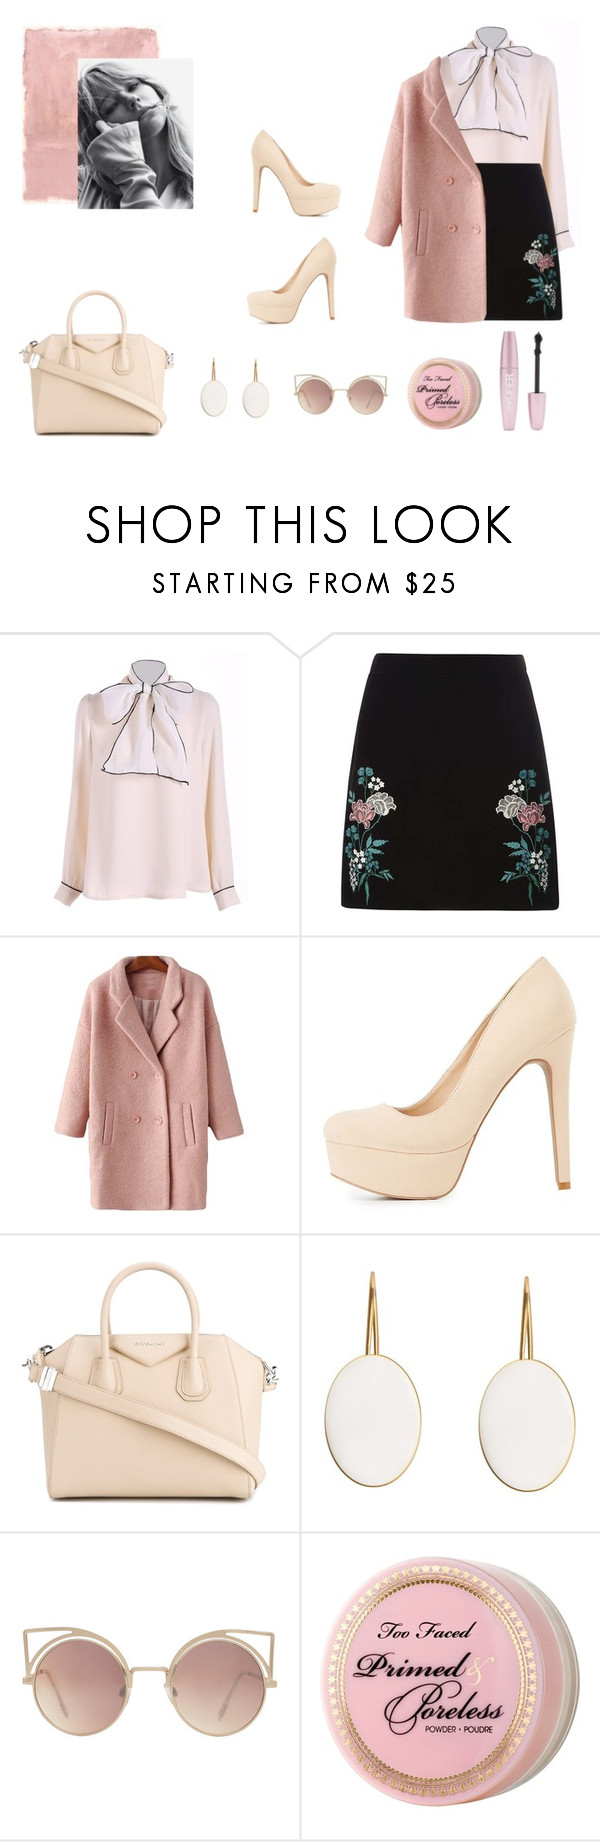 """""""Без названия #34"""" by valentino-lover ❤ liked on Polyvore featuring Rothko, Dorothy Perkins, Charlotte Russe, Givenchy, MANGO, Too Faced Cosmetics and Forever 21"""